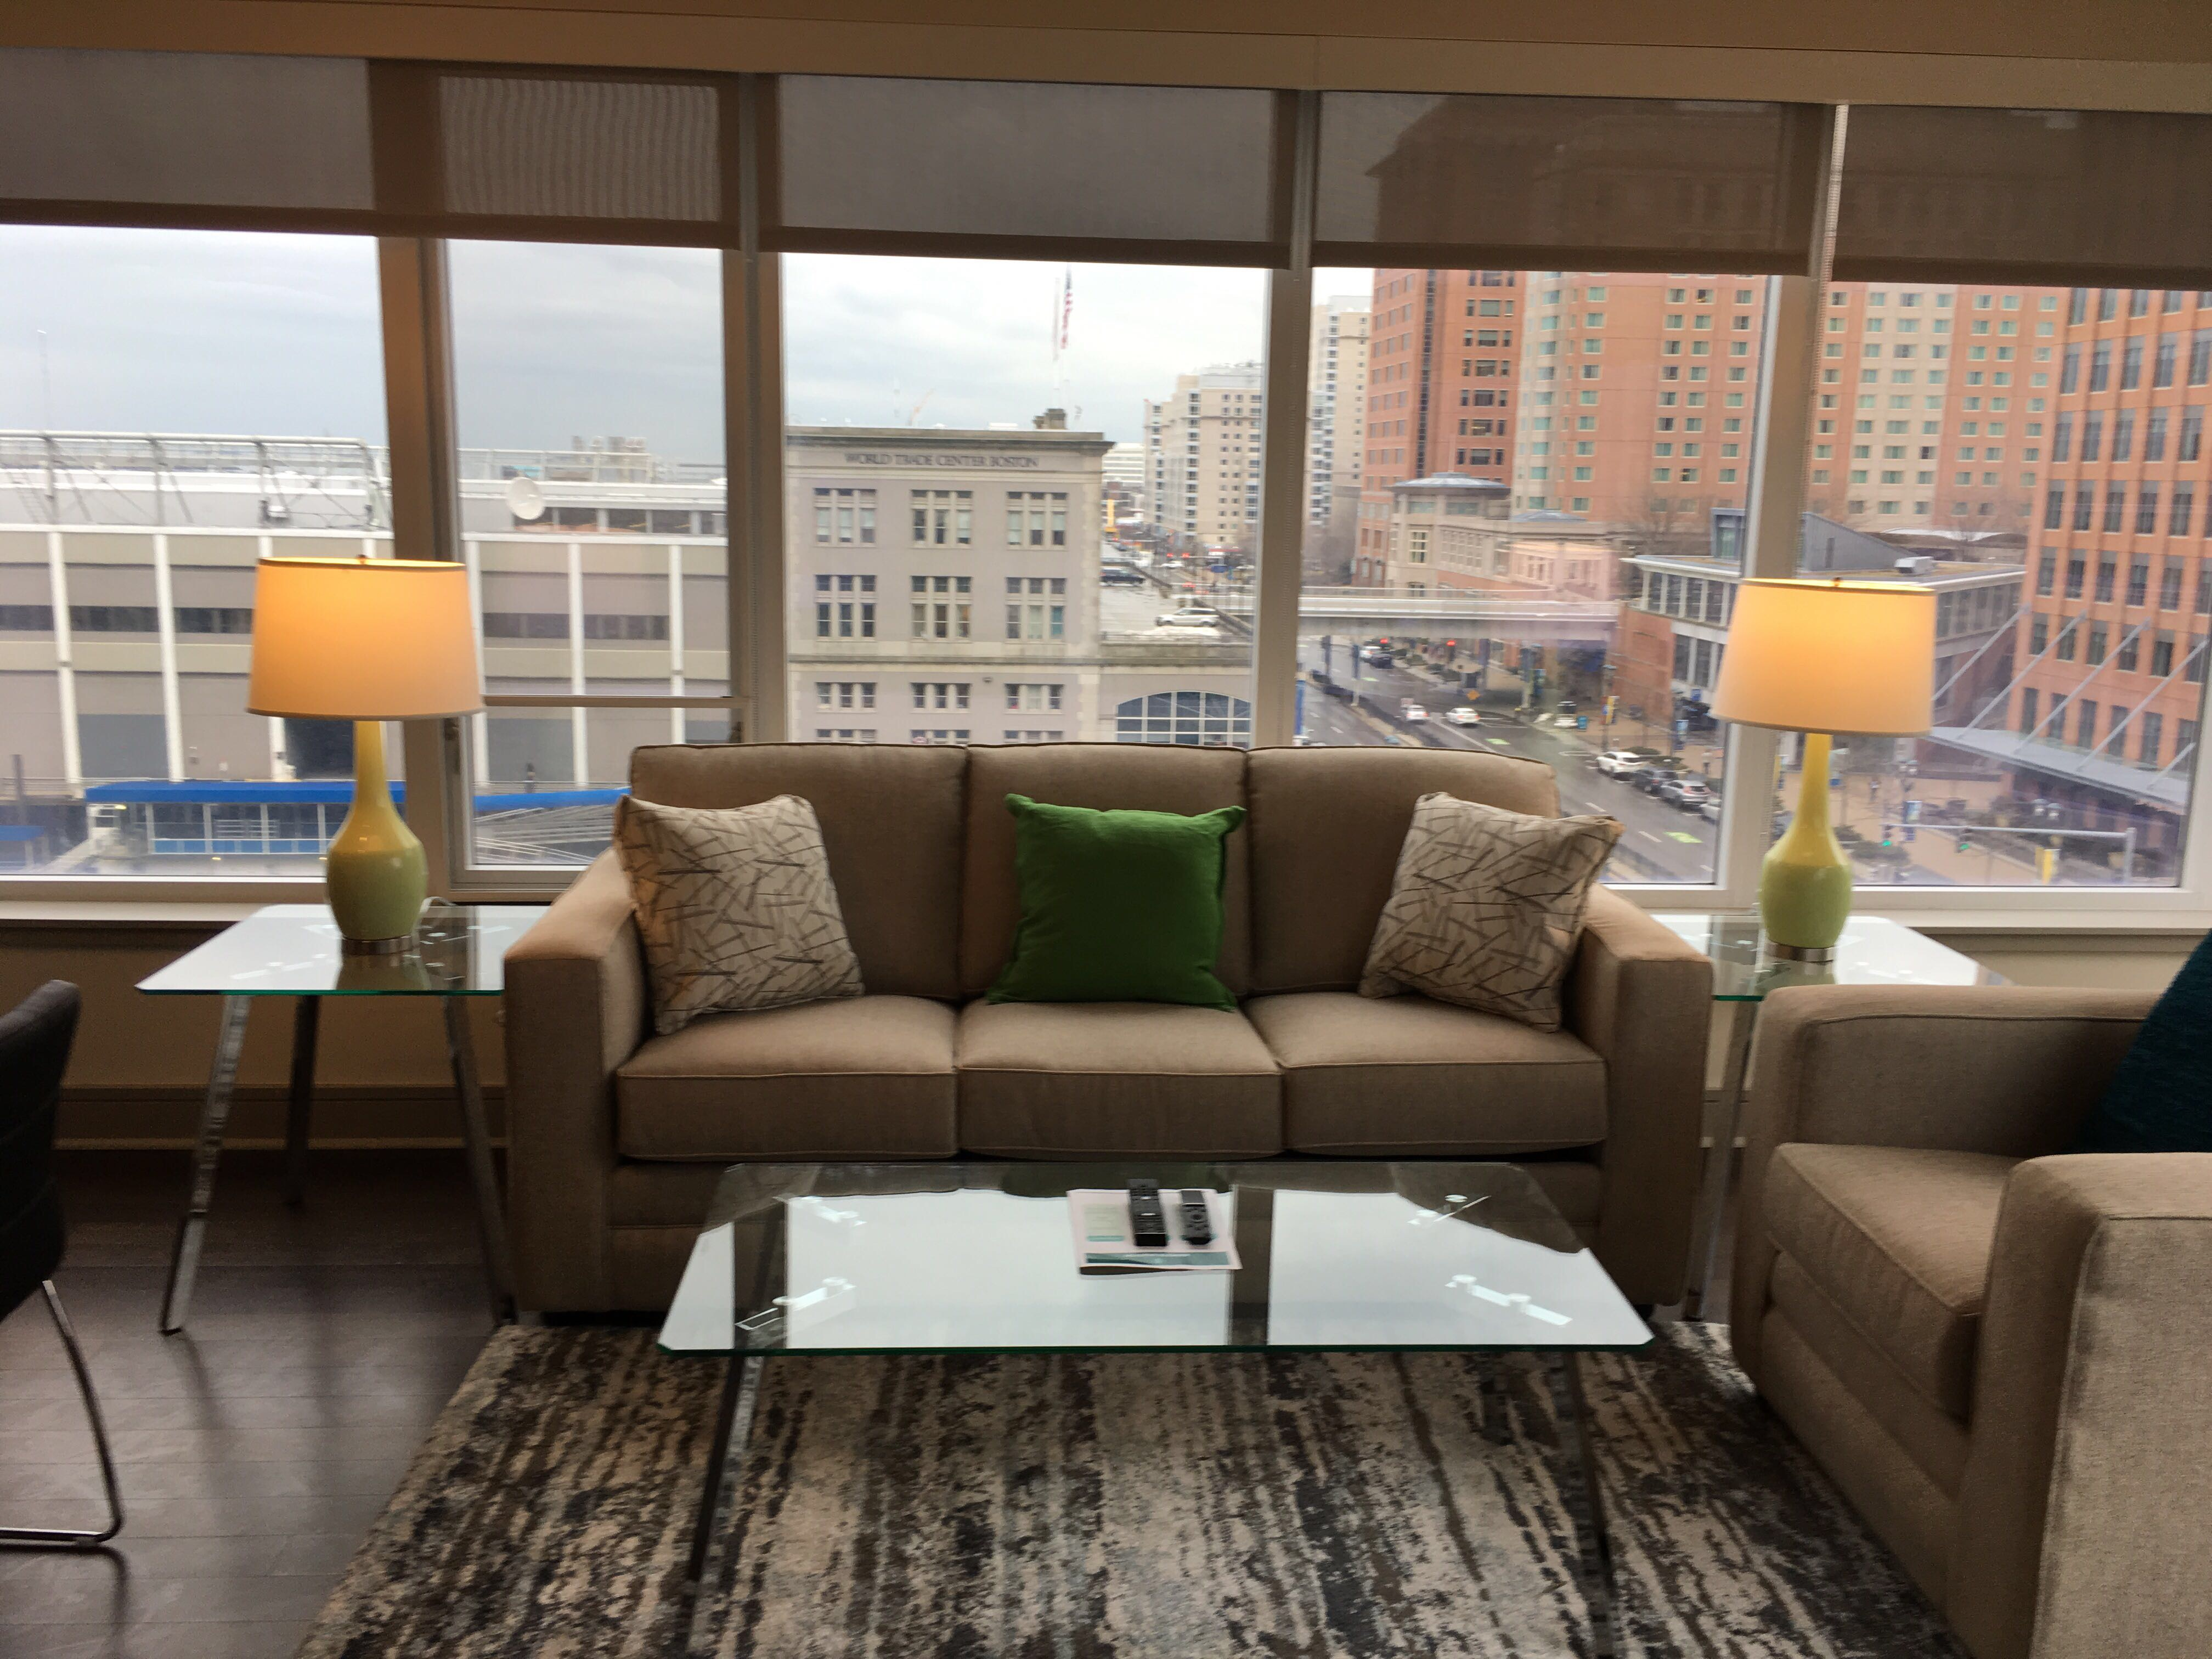 image 5 furnished 2 bedroom Apartment for rent in Waterfront, Boston Area